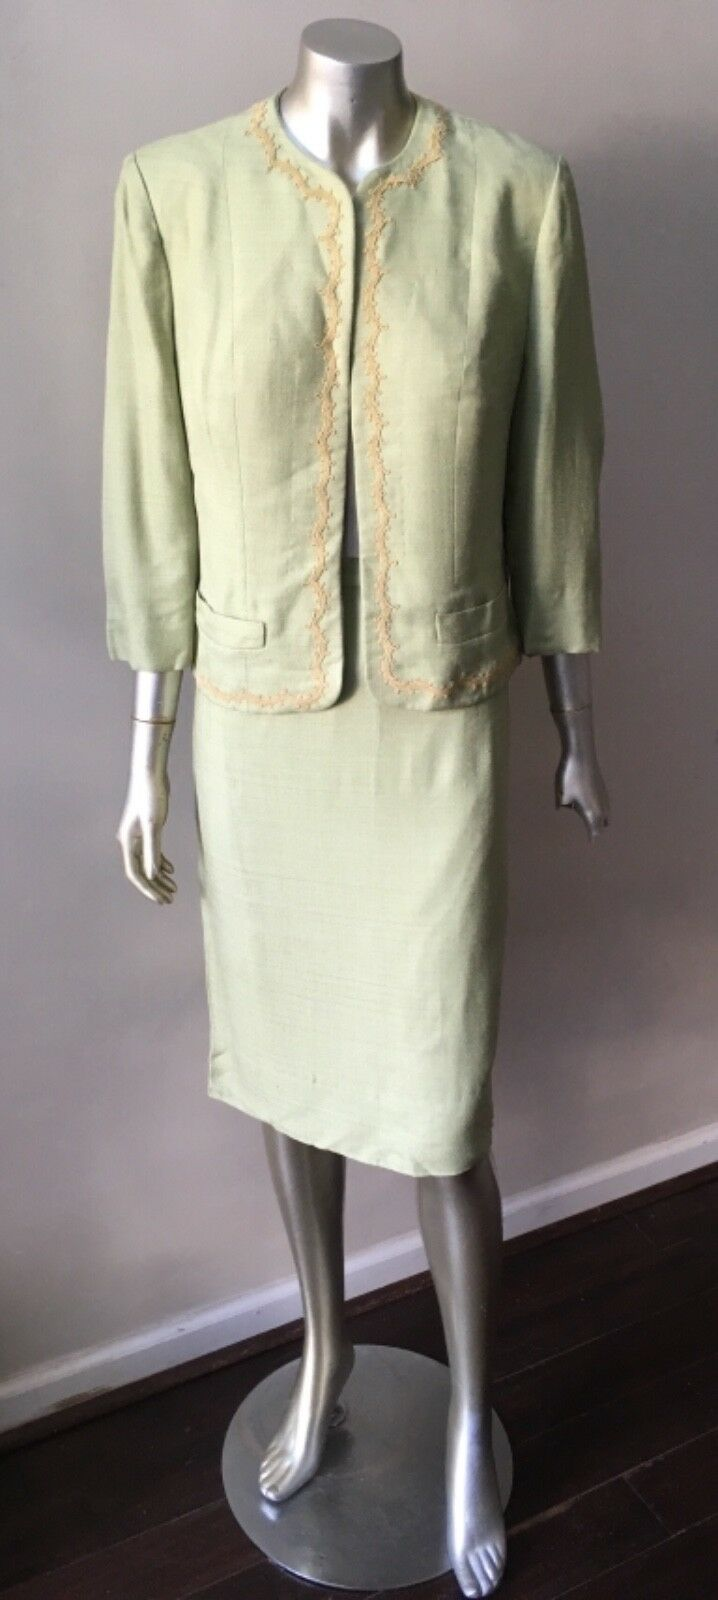 Embroidered Silk 2 Piece Vintage 70s Pencil Skirt Seafoam Green Suit Size M